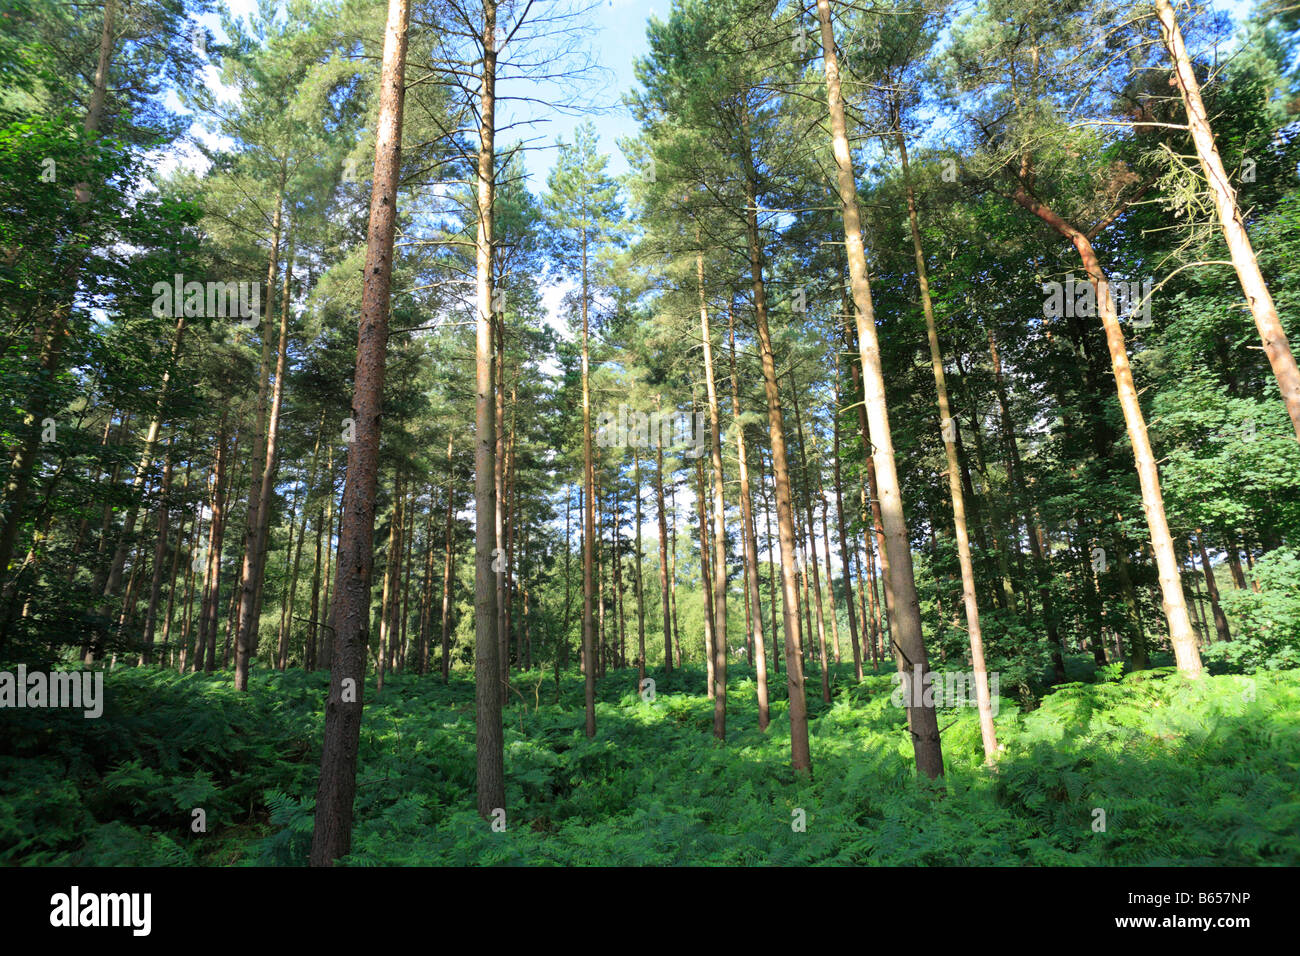 Pine woodland in Thetford Forest. Breckland district, Norfolk, England. - Stock Image